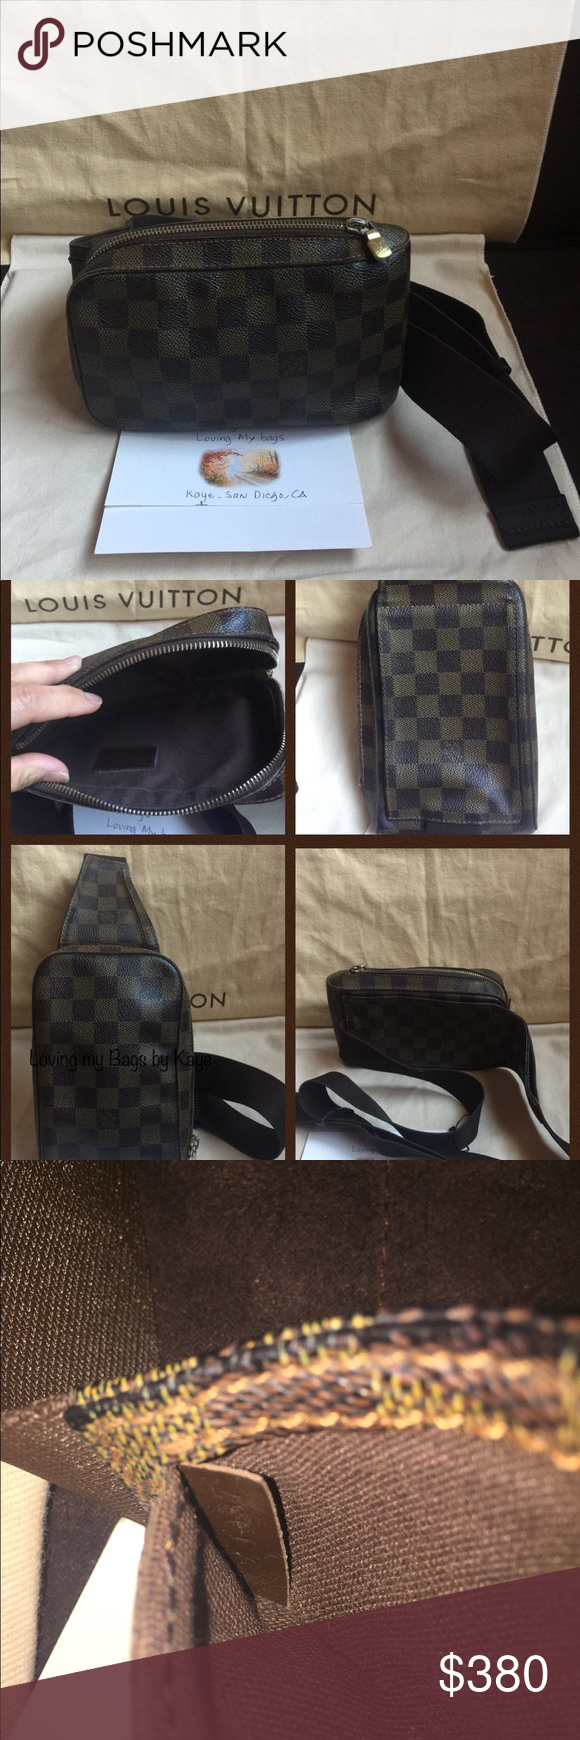 Sold Lv Geronimo Louis Vuitton Bag Small Crossbody Things To Sell